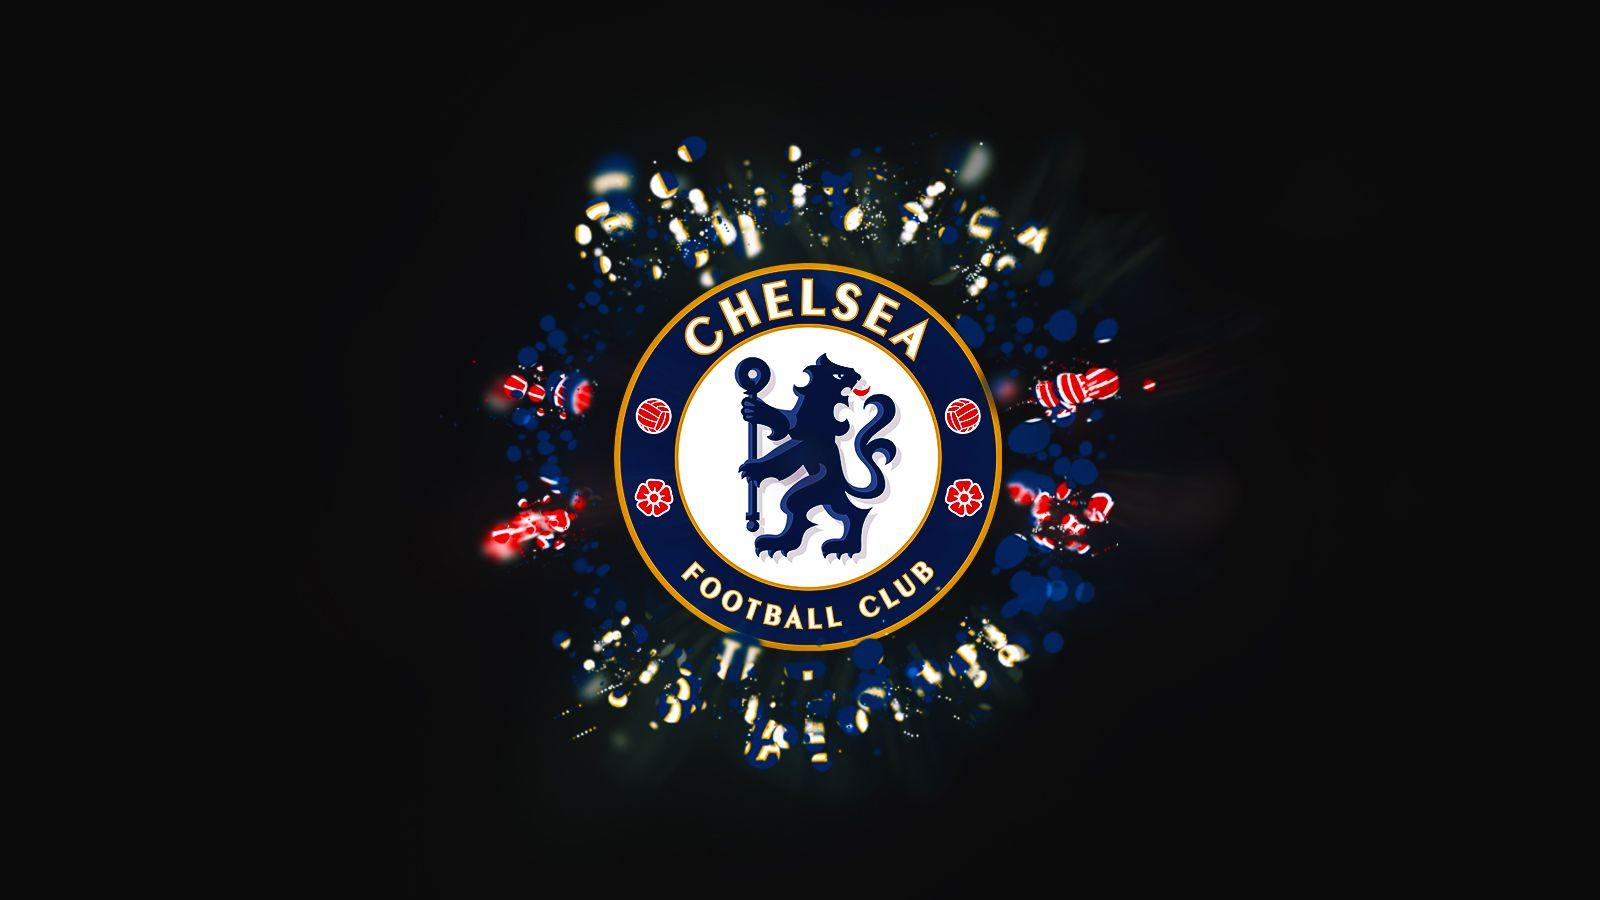 Chelsea F C Dark Wallpapers Wallpaper Cave